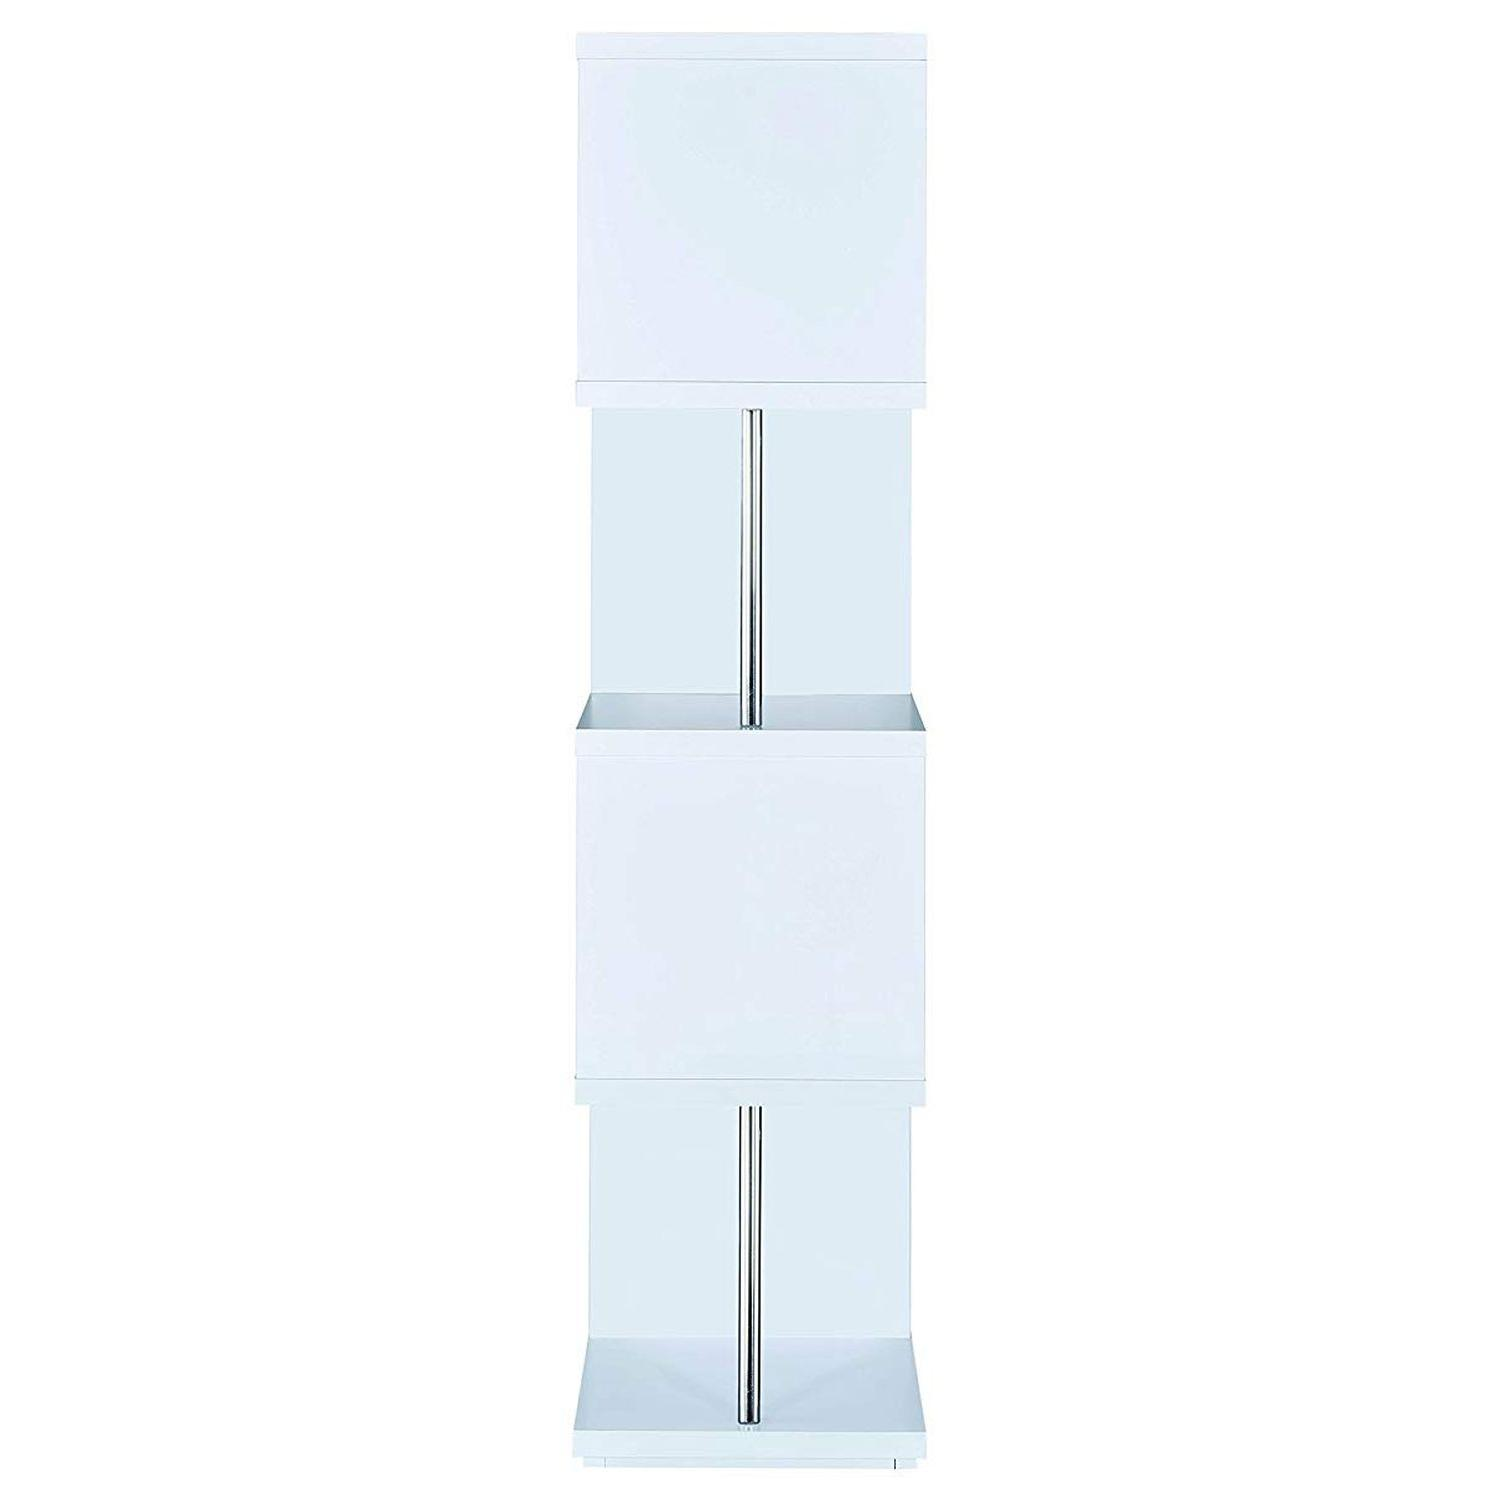 4-Tier White Bookcase w/ Chrome Metal Bar Accents - image-1